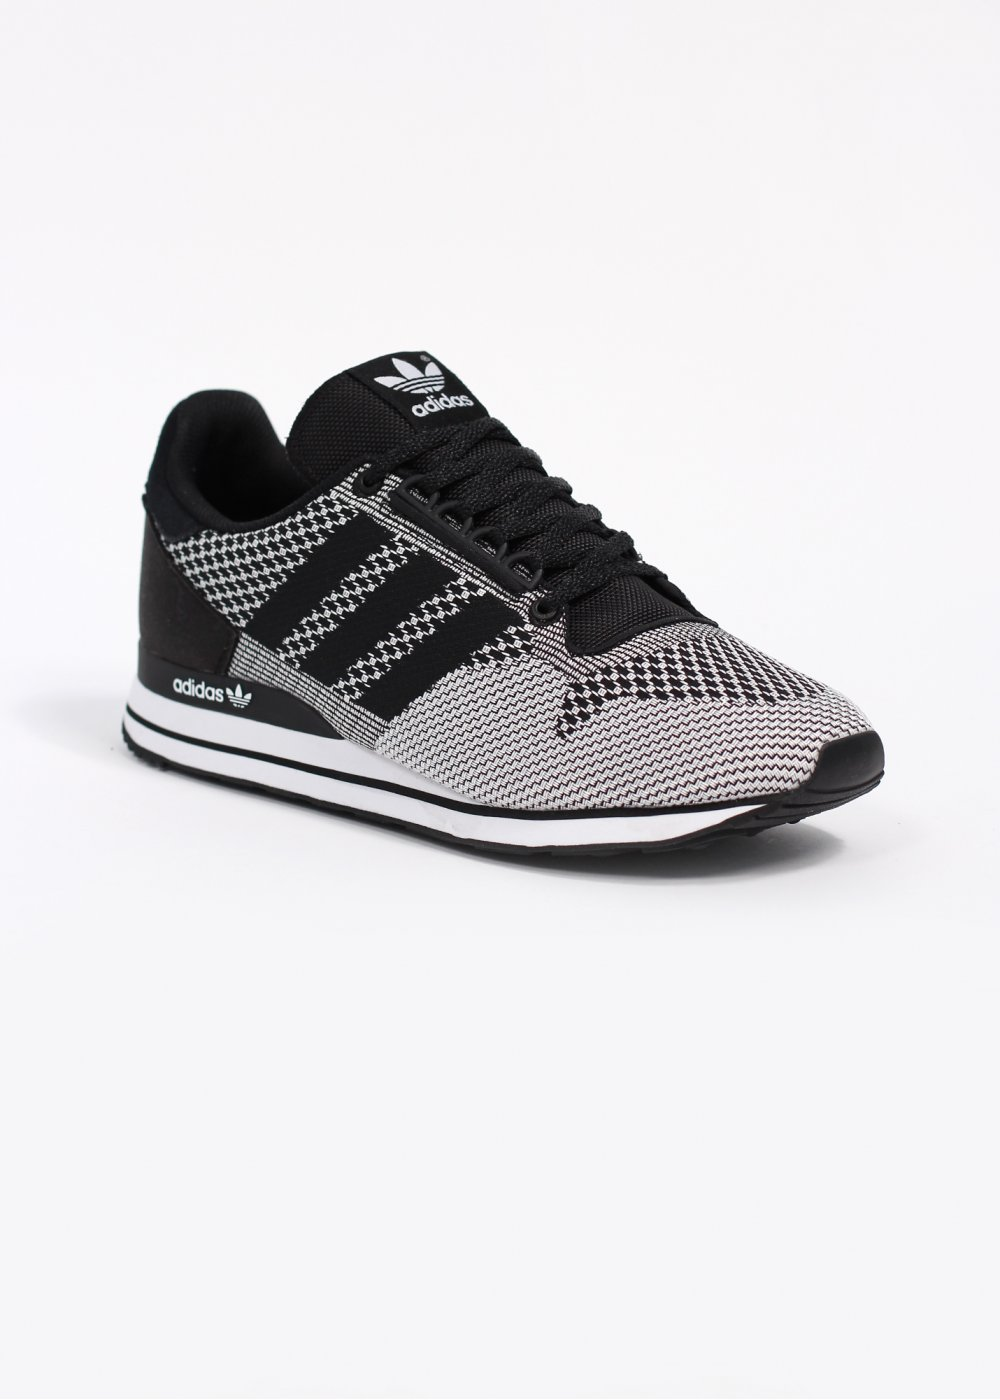 Discount On Adidas Shoes In Delhi